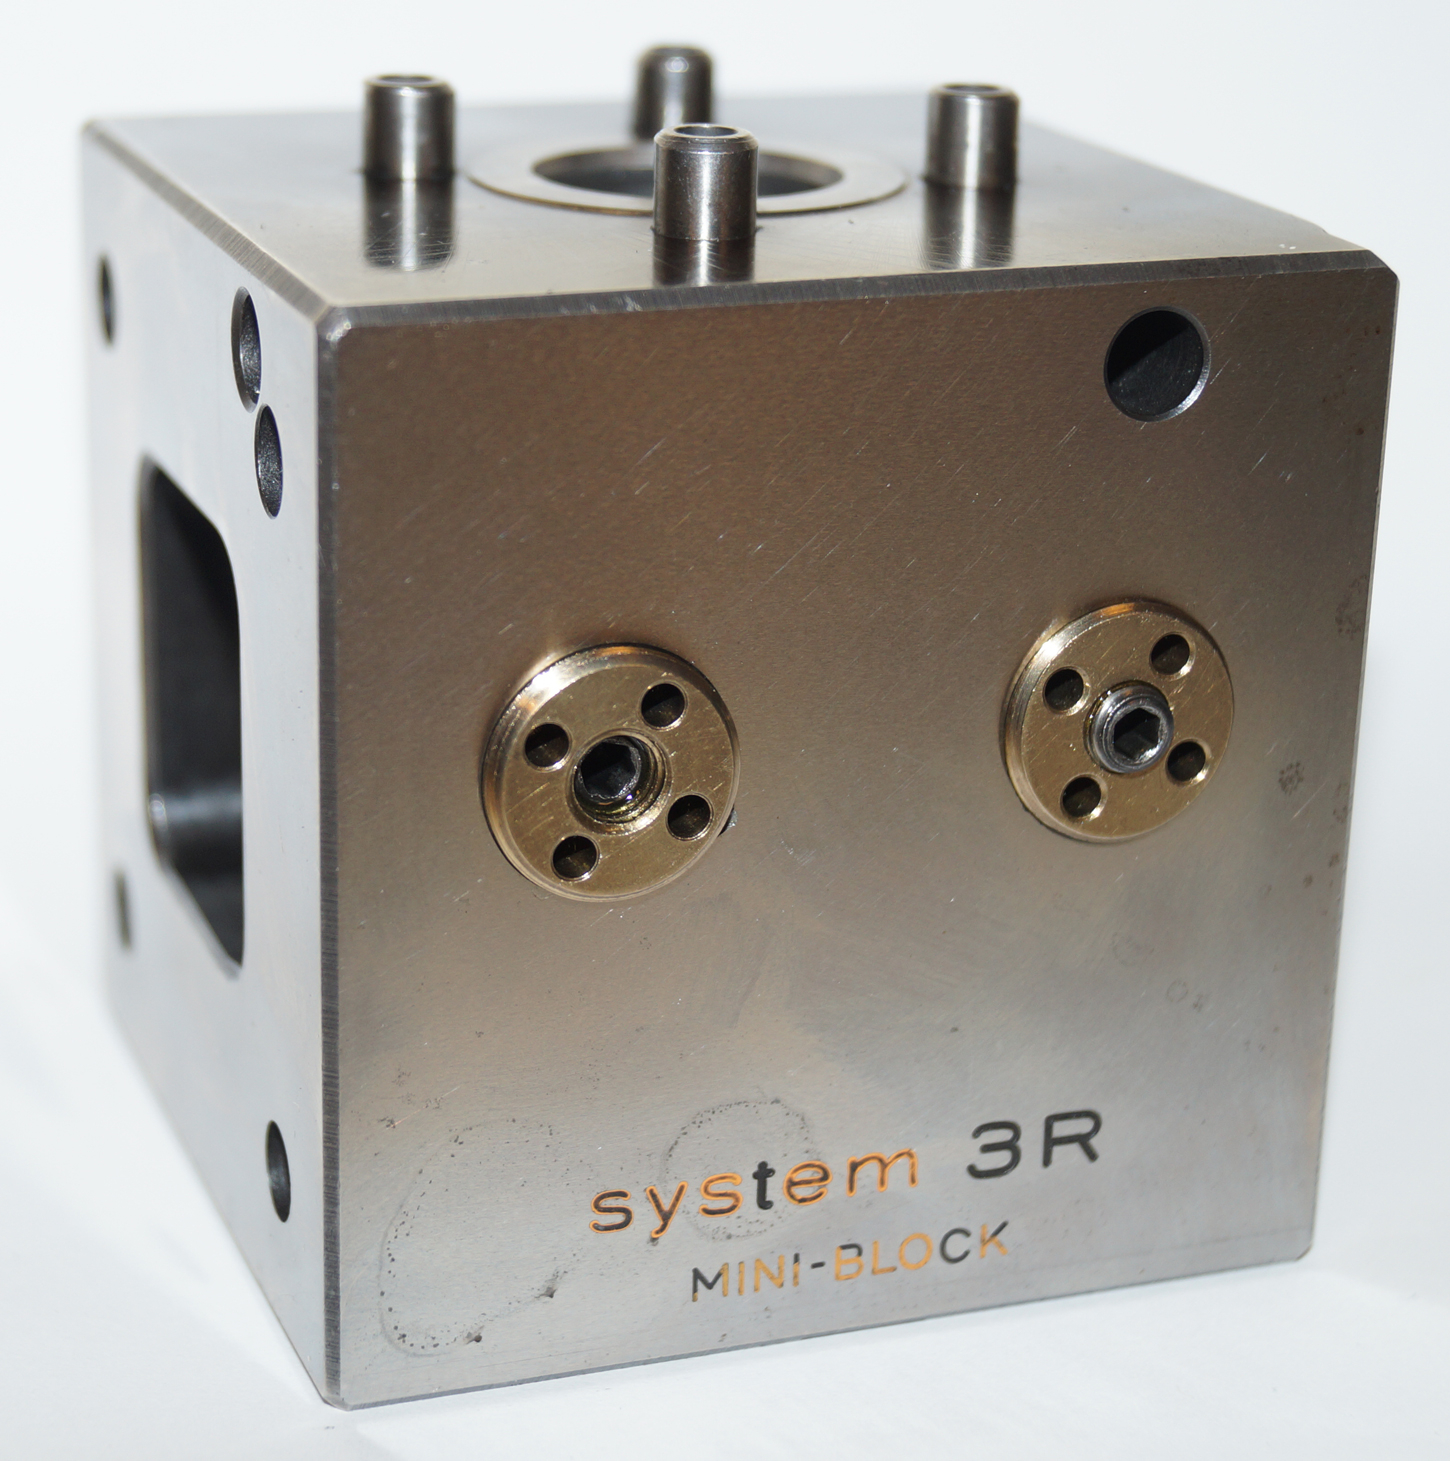 System 3R Mini-Block 20mm x 70mm Cube 3R-321.46